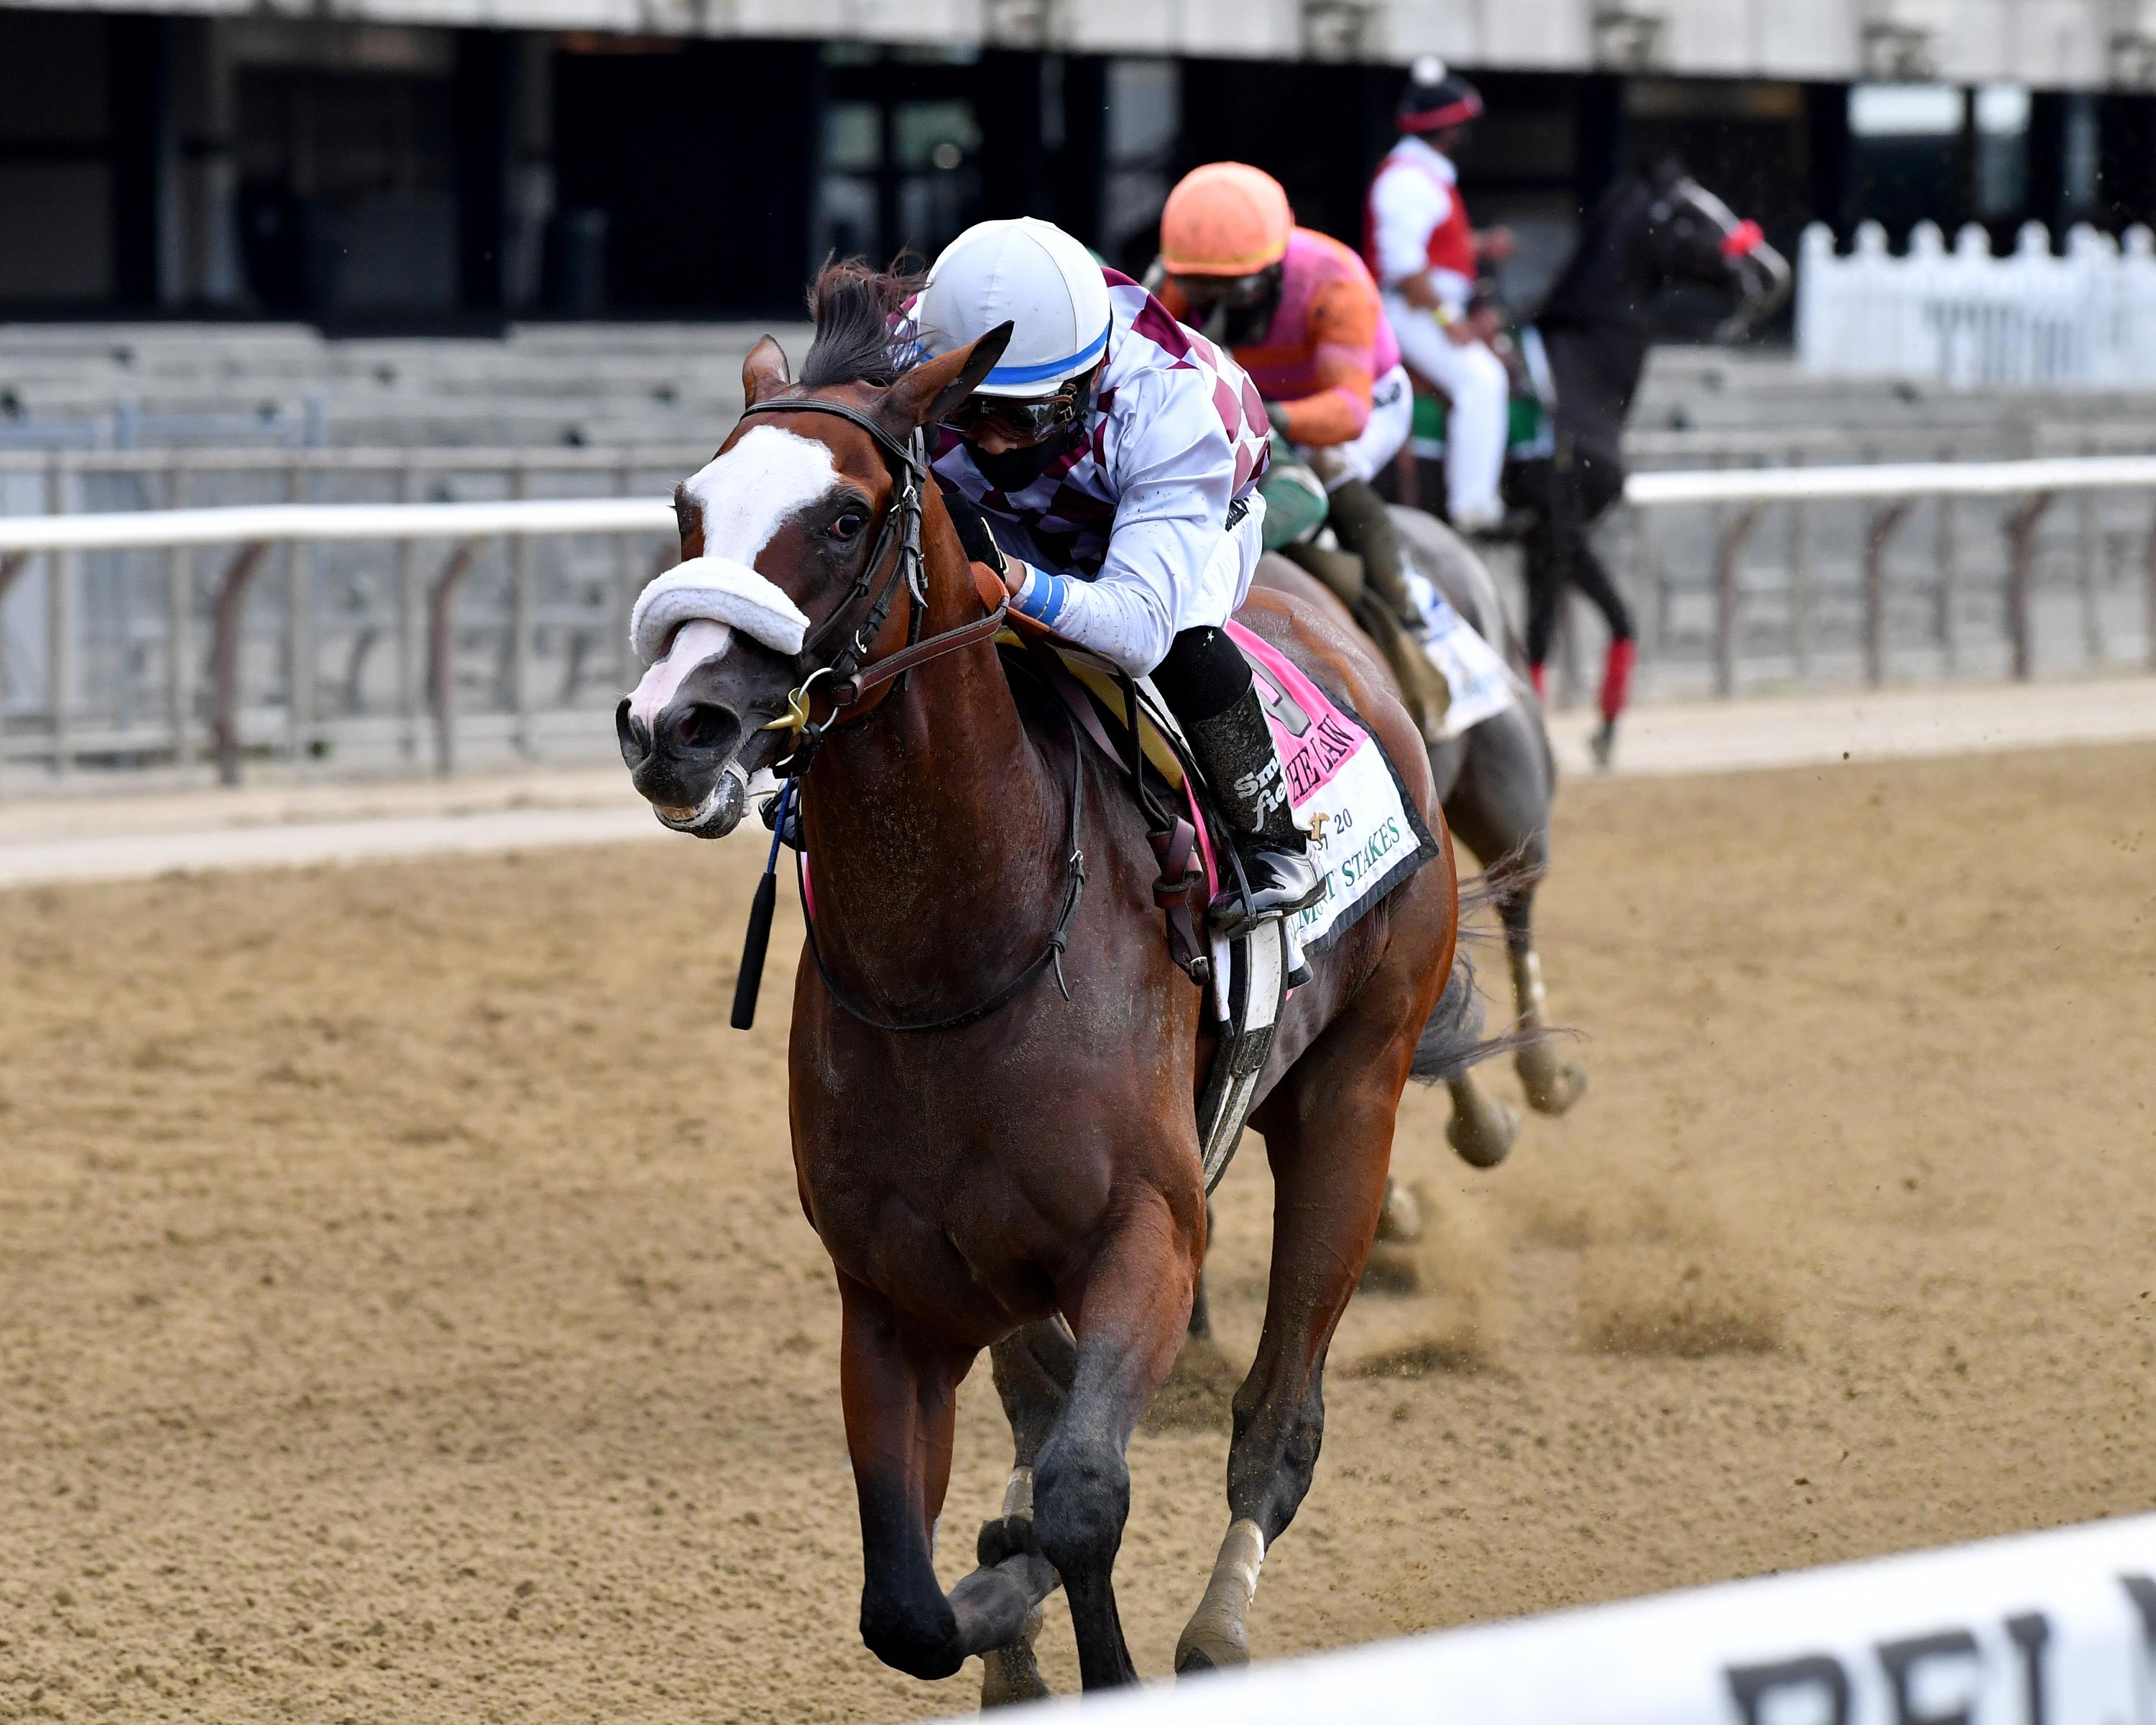 Tiz the Law streaks to victory in the Belmont.